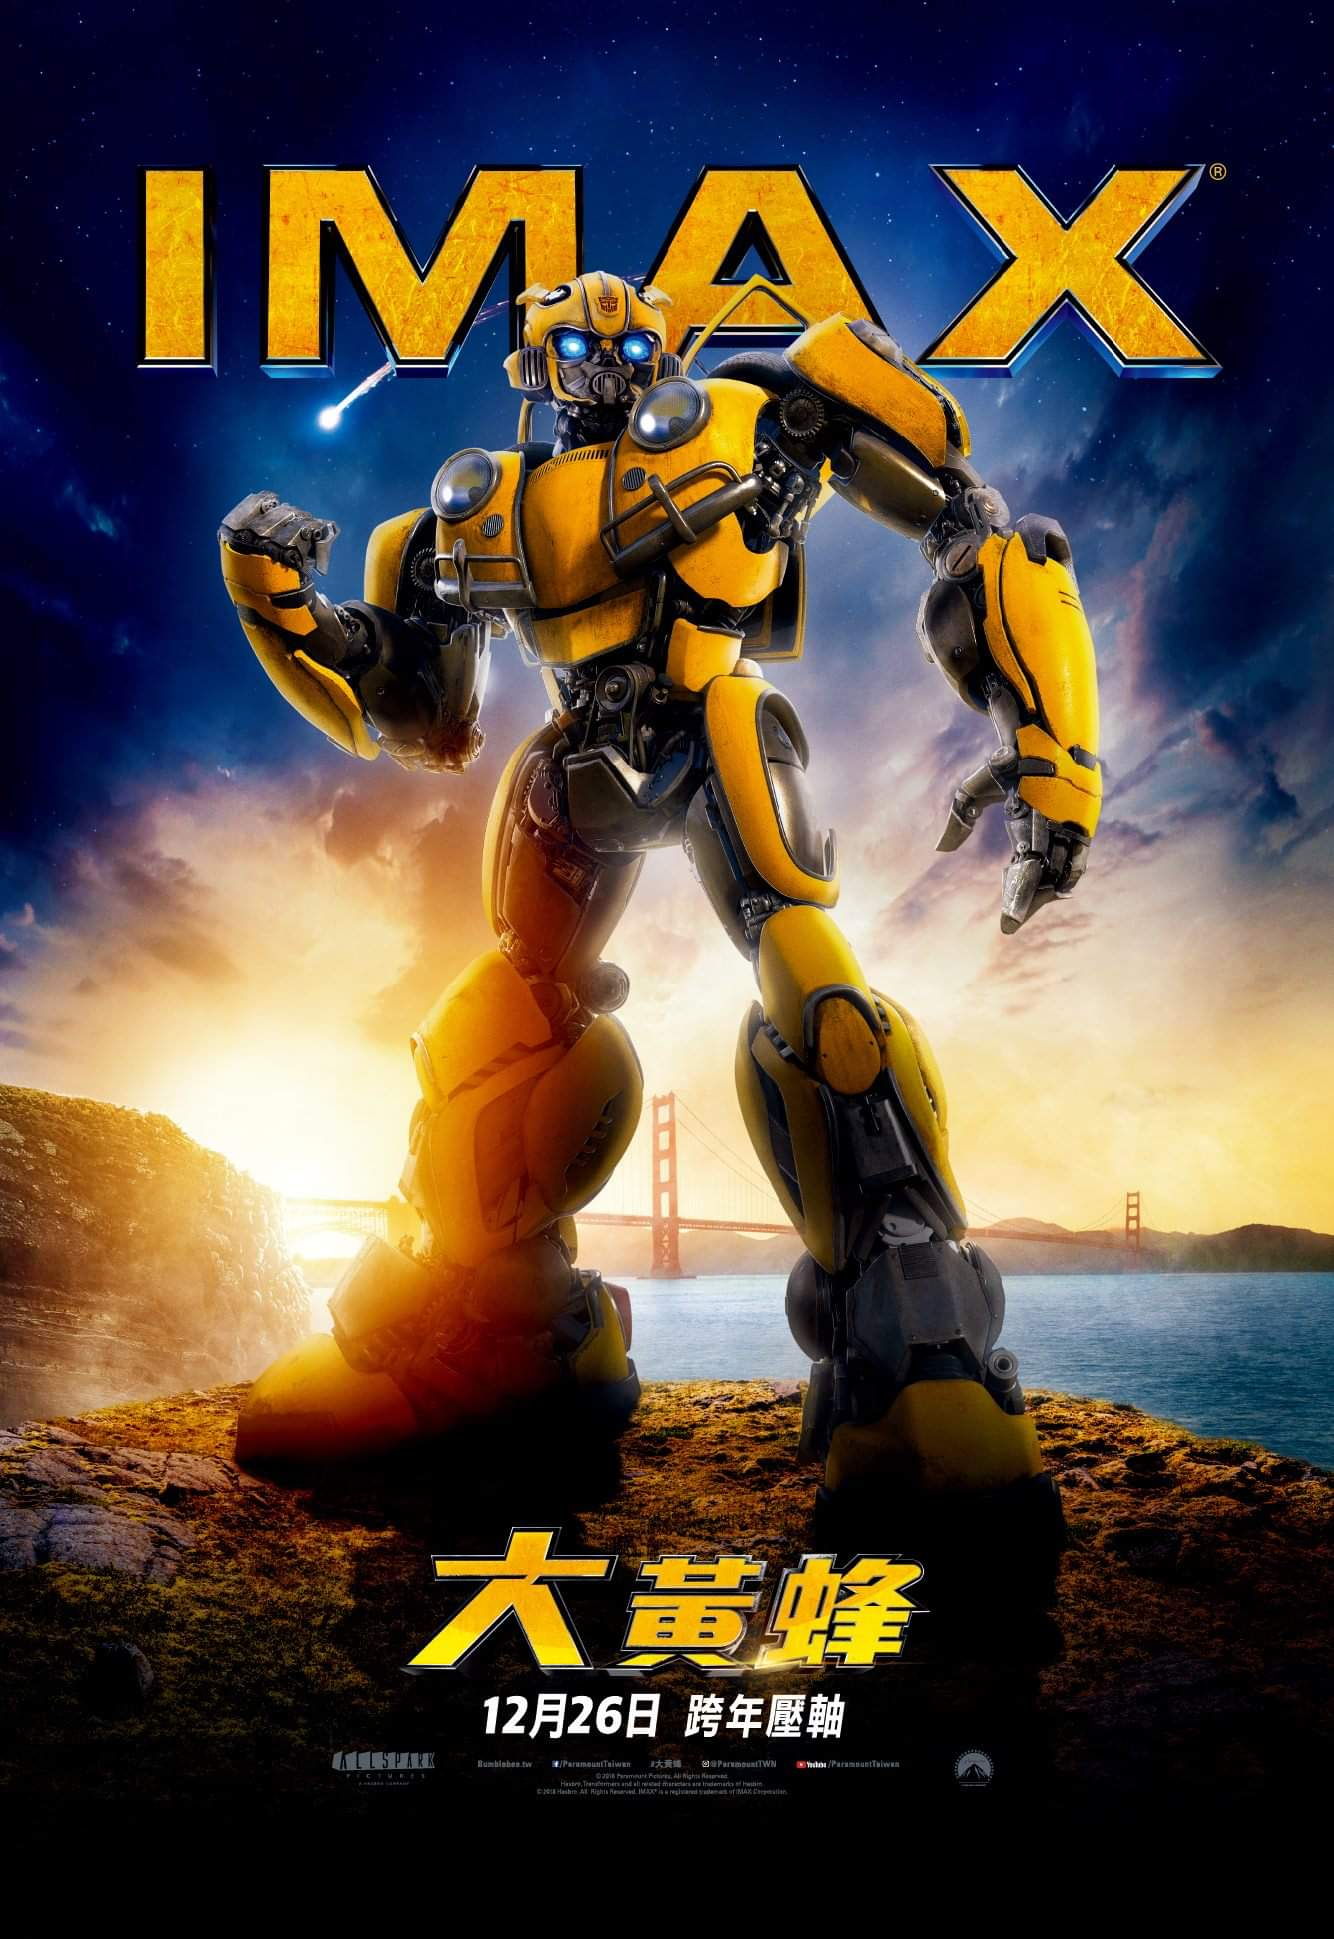 Fall Of Cybertron Wallpaper Hd Paramount Taiwan Bumblebee Movie Imax Poster And Date